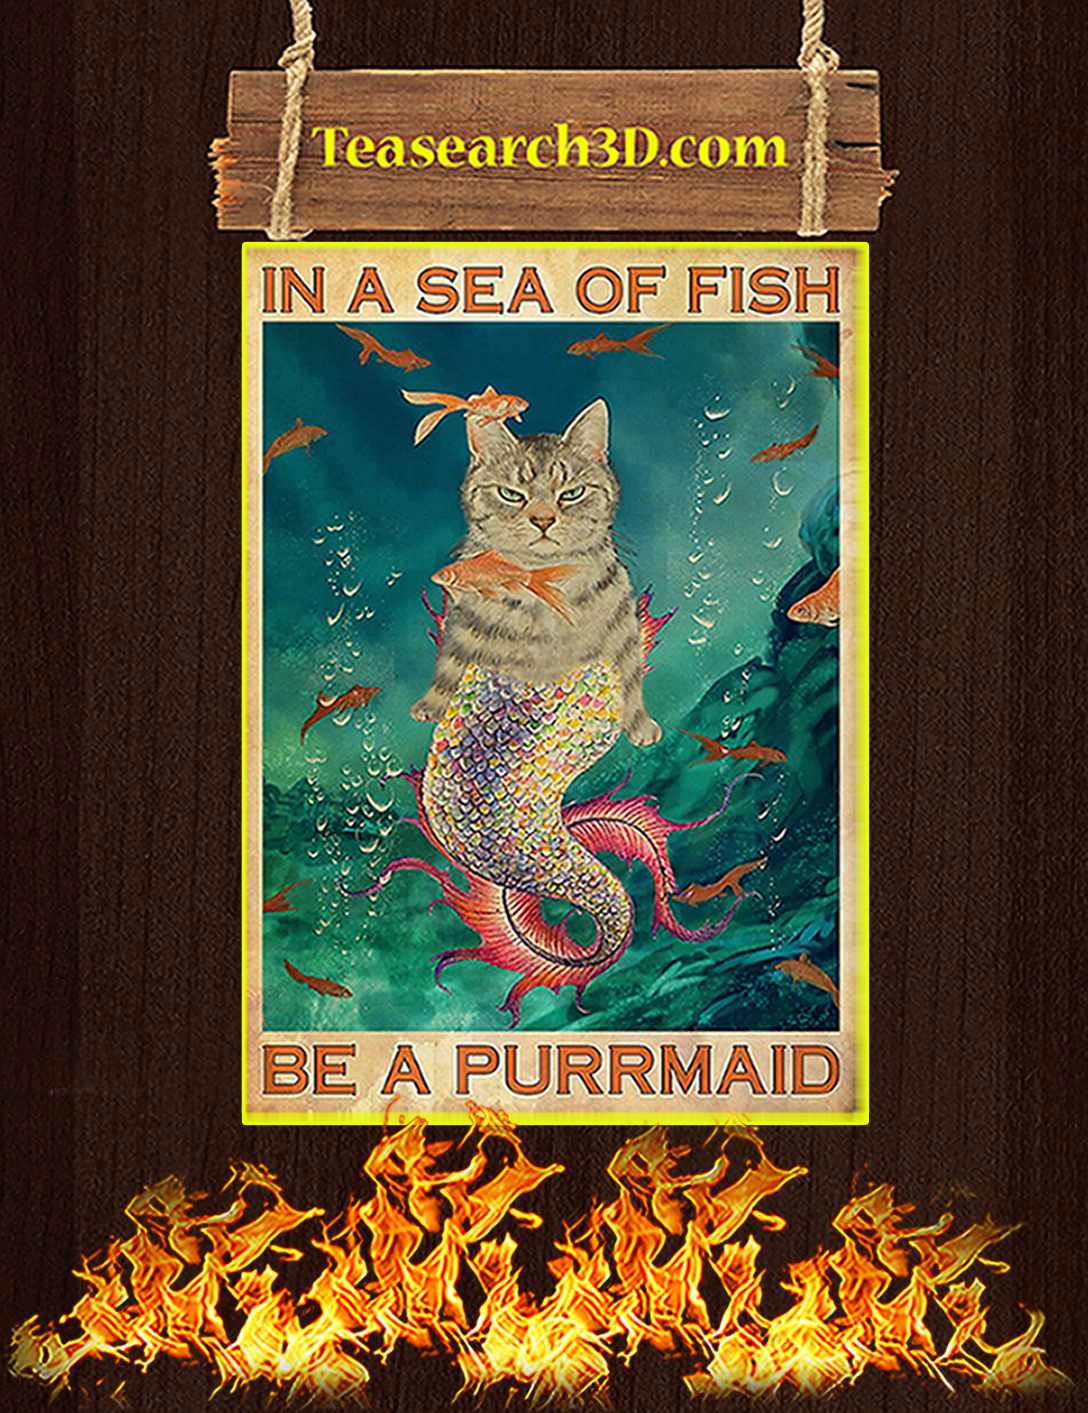 In a sea of fish be a purrmaid poster A2